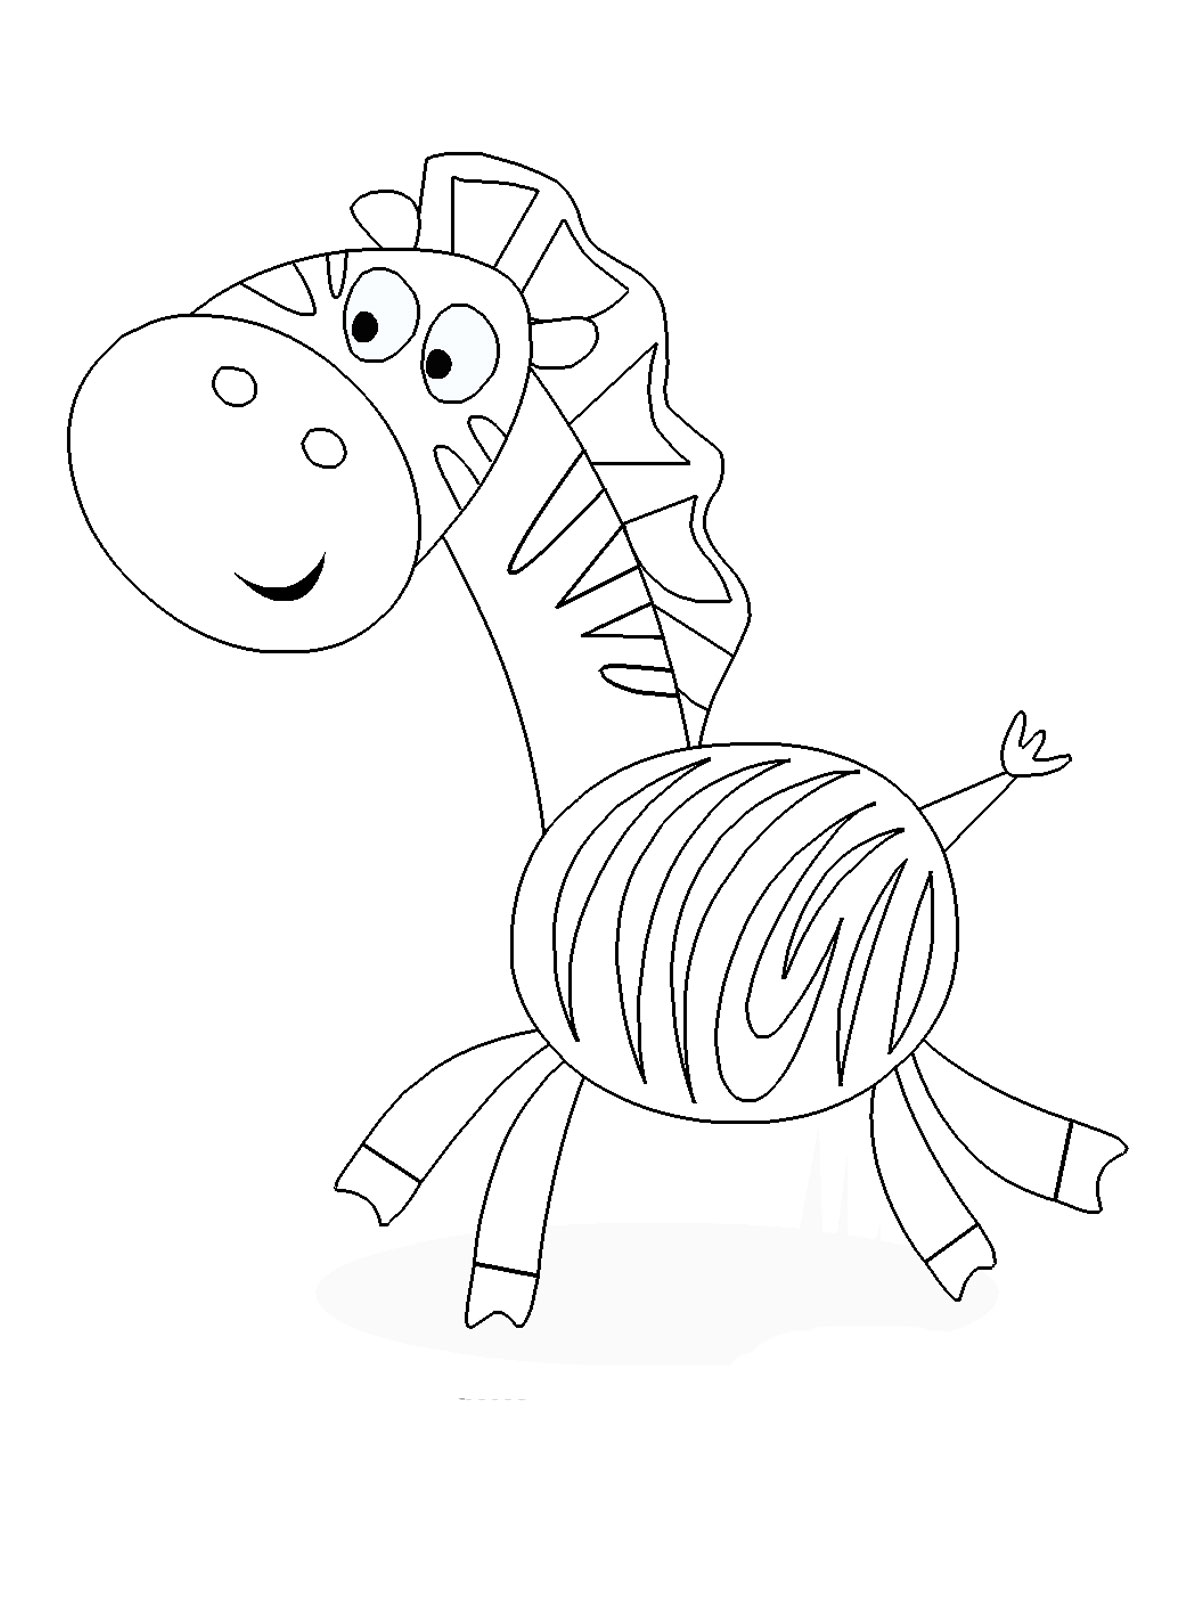 fun coloring pages to print free printable funny coloring pages for kids print fun to pages coloring